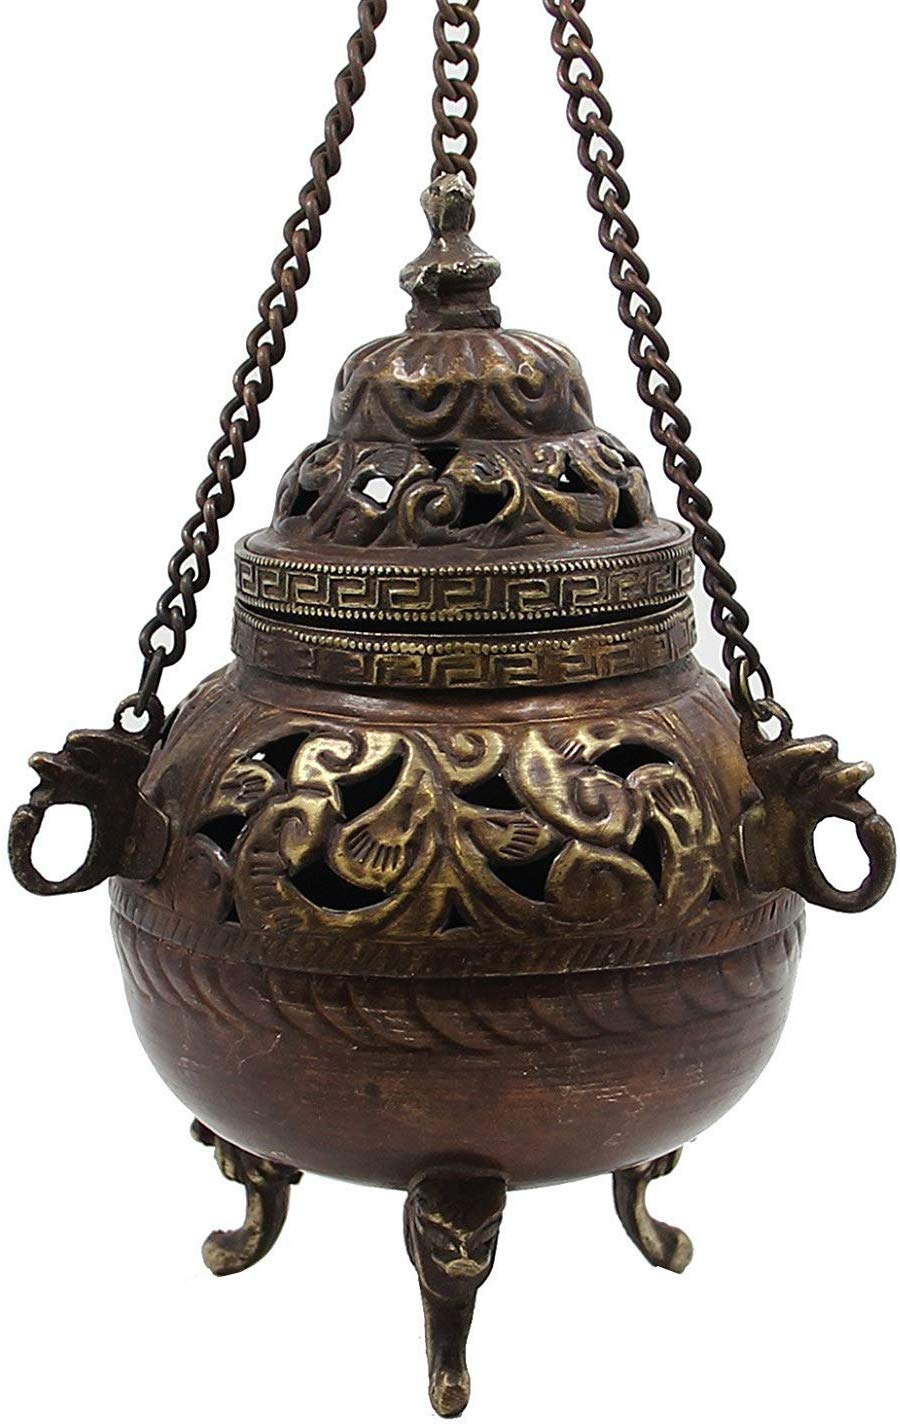 Tibetan Traditional Hanging Incense Burner Copper 6 5 High Dharmaobjects